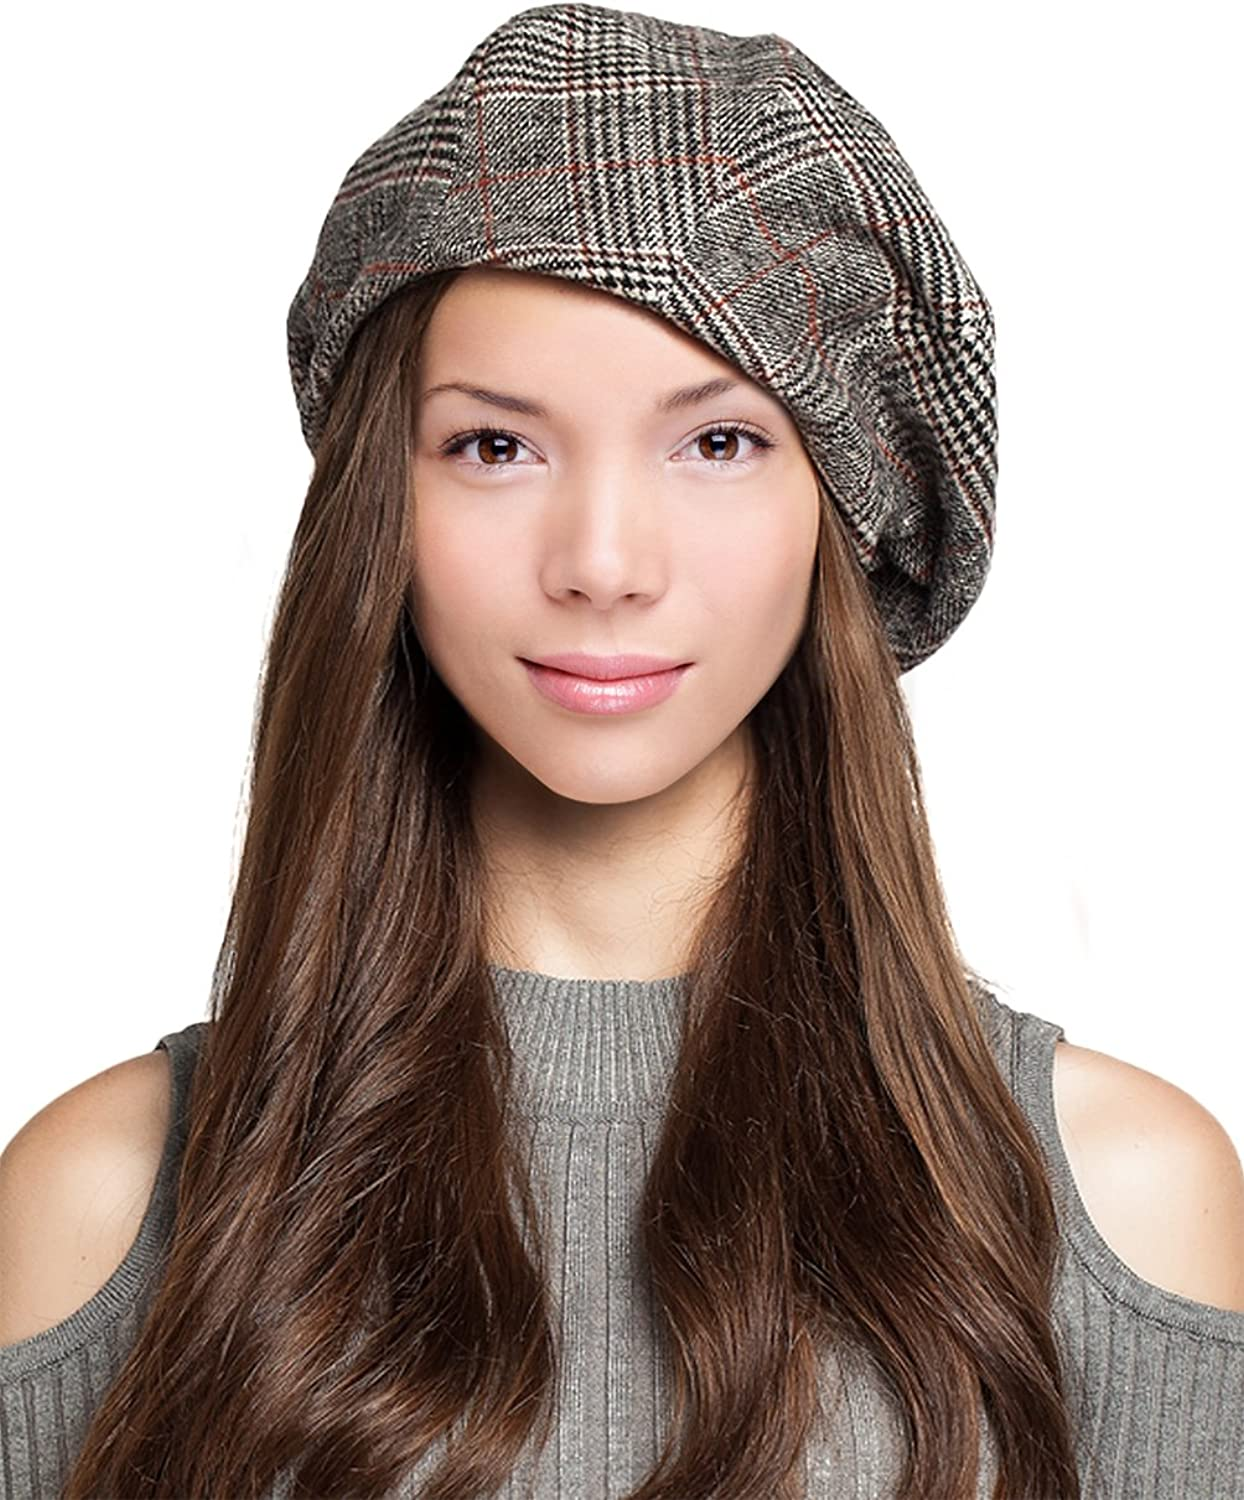 Dahlia Women's Velvet Lined Wool Blend Beret Bow Decorated Painter Plaid